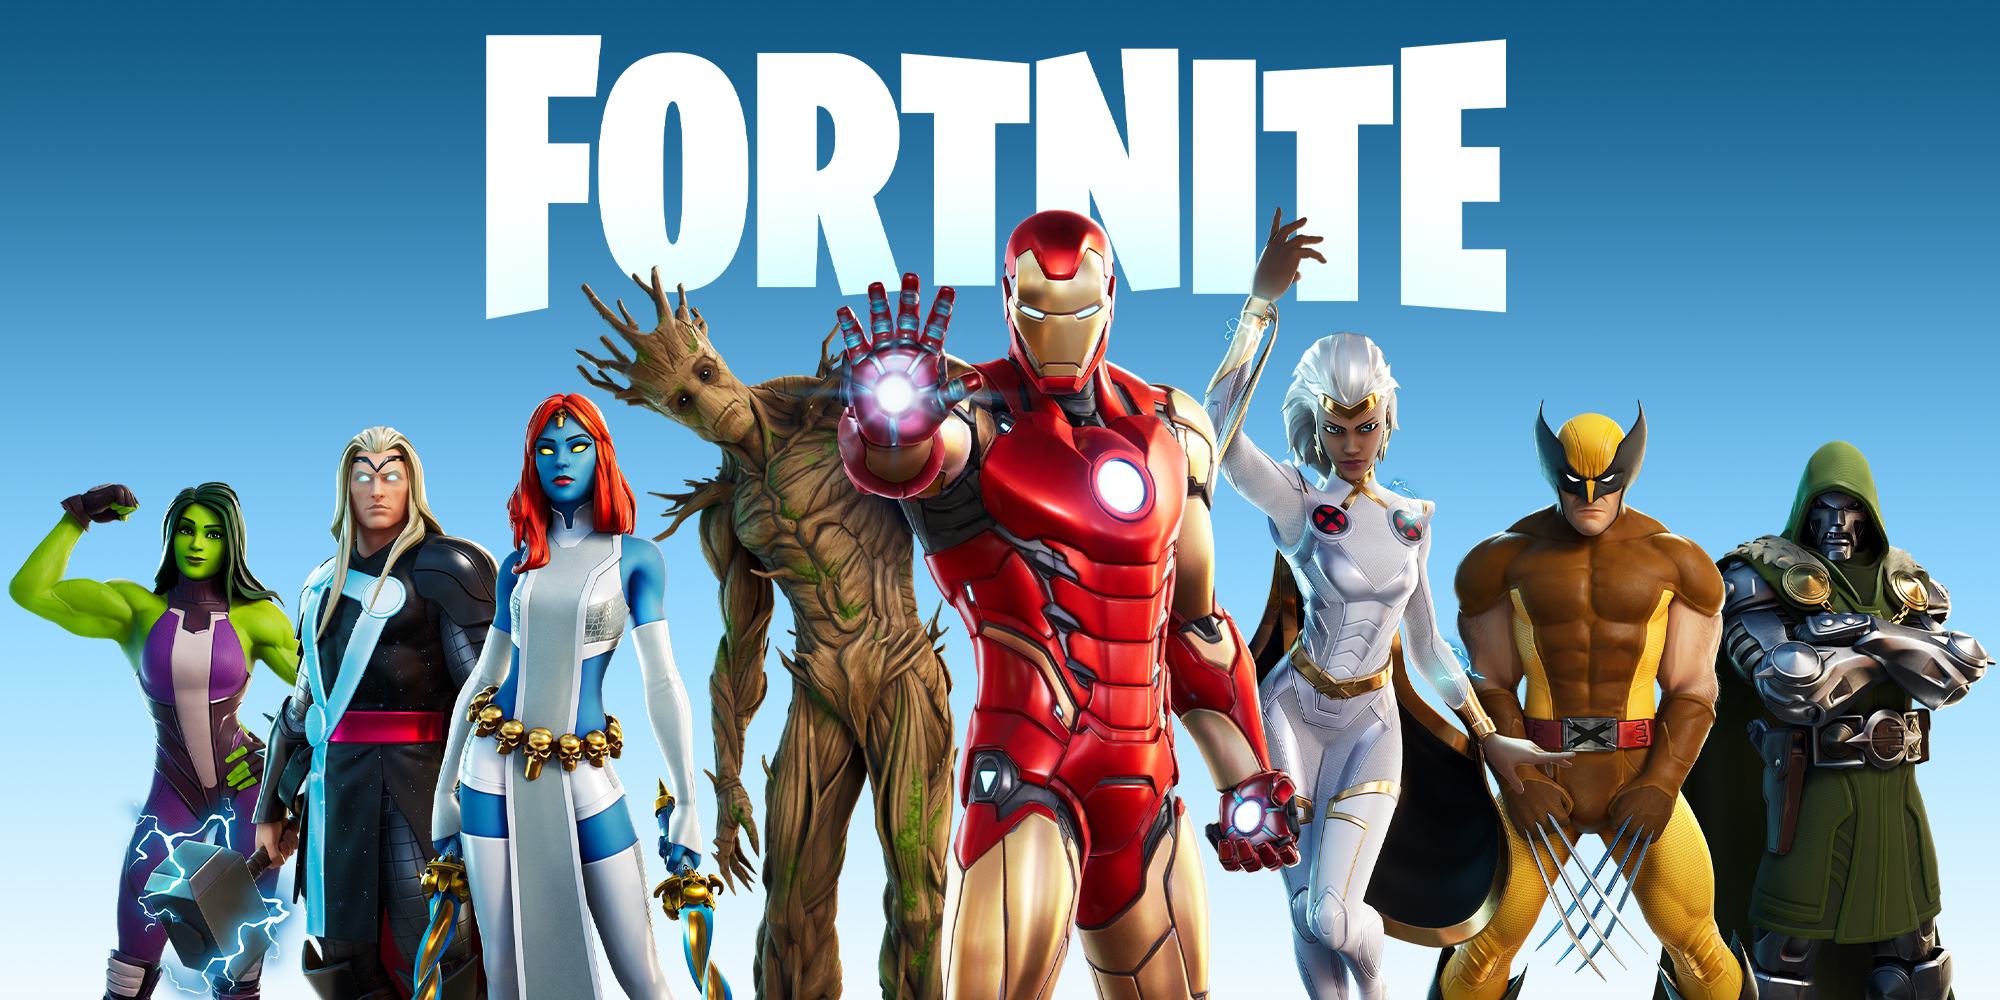 Fortnite - Game will receive a number of improvements for next generation consoles